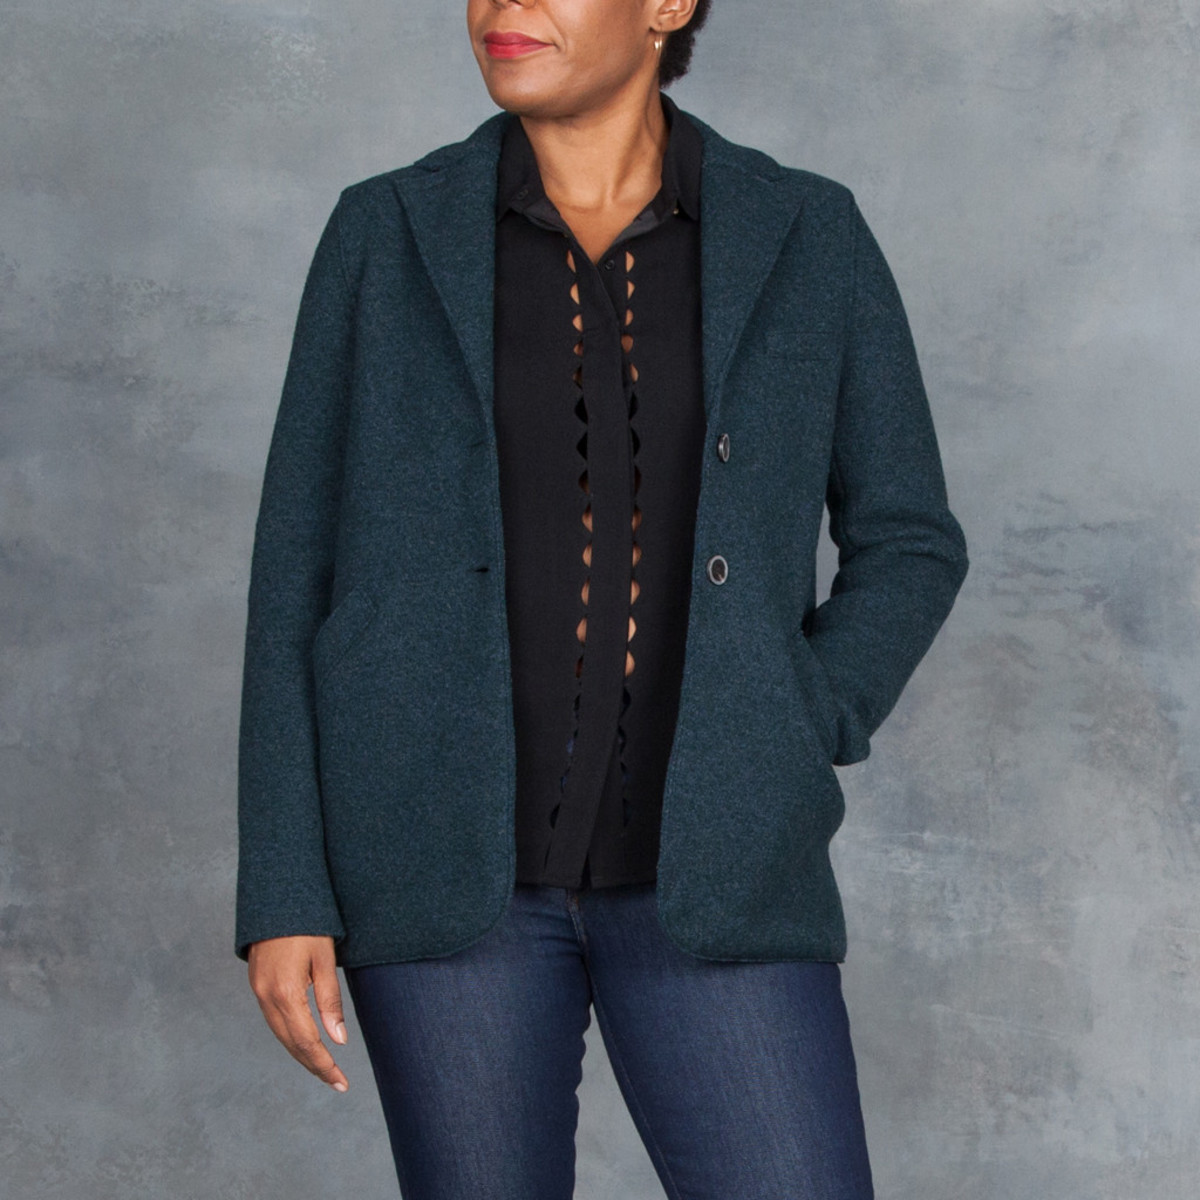 harris wharf london military jacket teal from tamarind clothing boutique garmentory. Black Bedroom Furniture Sets. Home Design Ideas